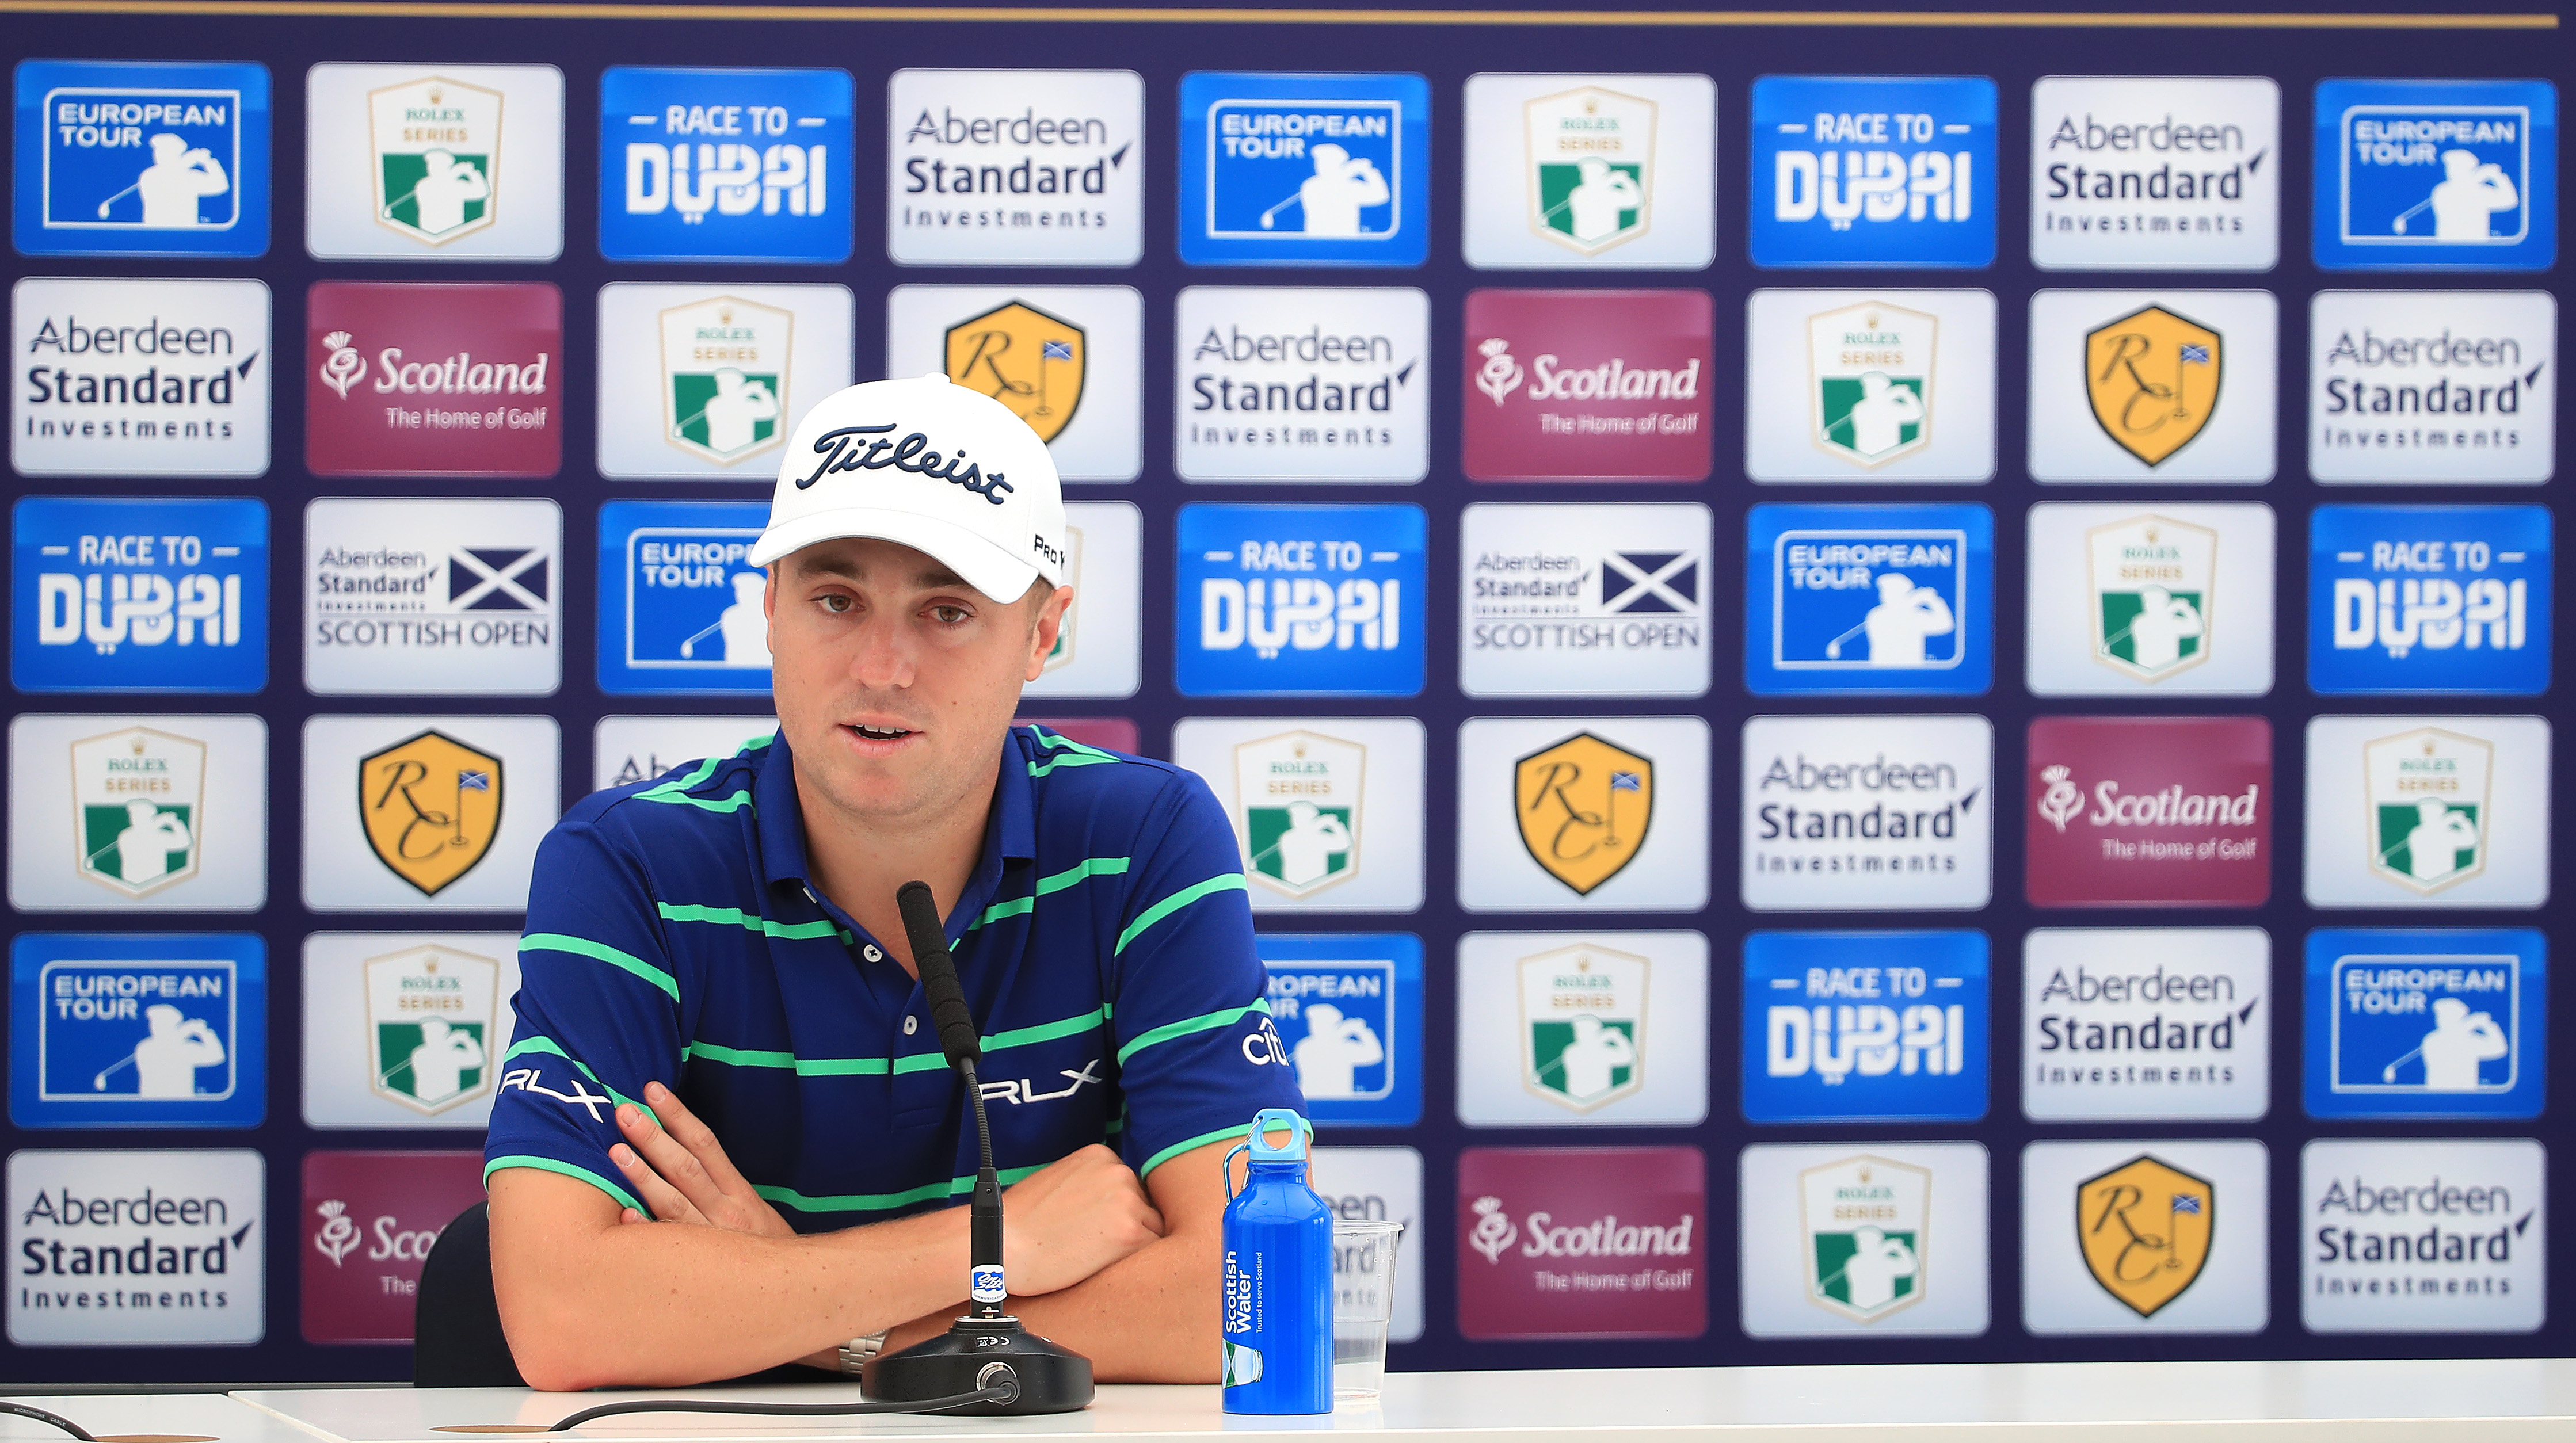 Justin Thomas is playing the Scottish Open at the Renaissance,